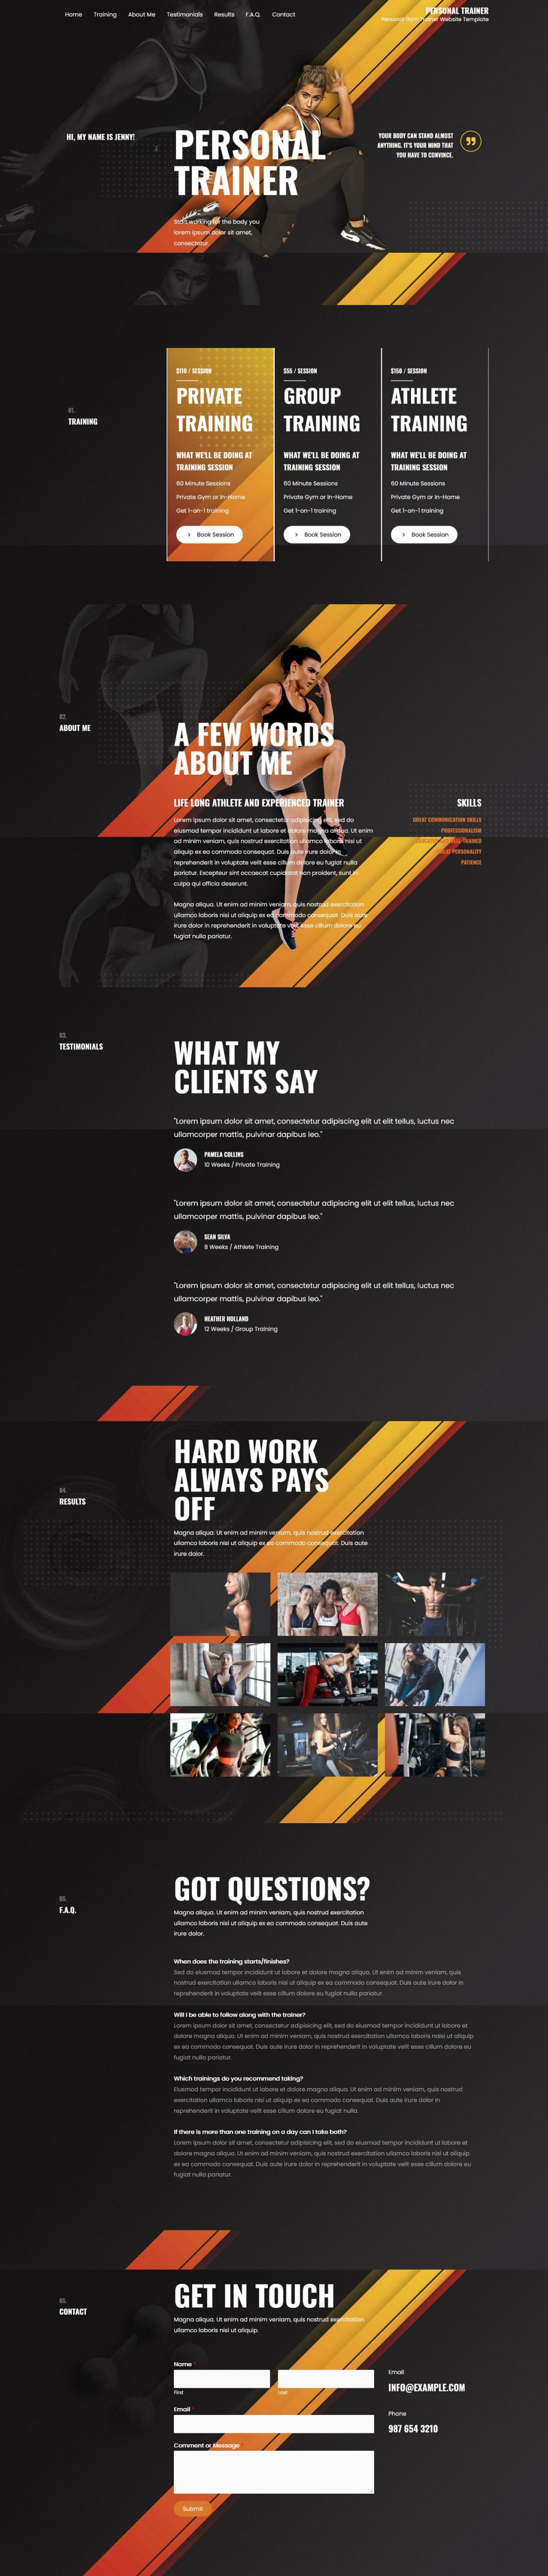 Fagowi.com Website Design Templates For Personal Trainer Female 2 - Home Page Image